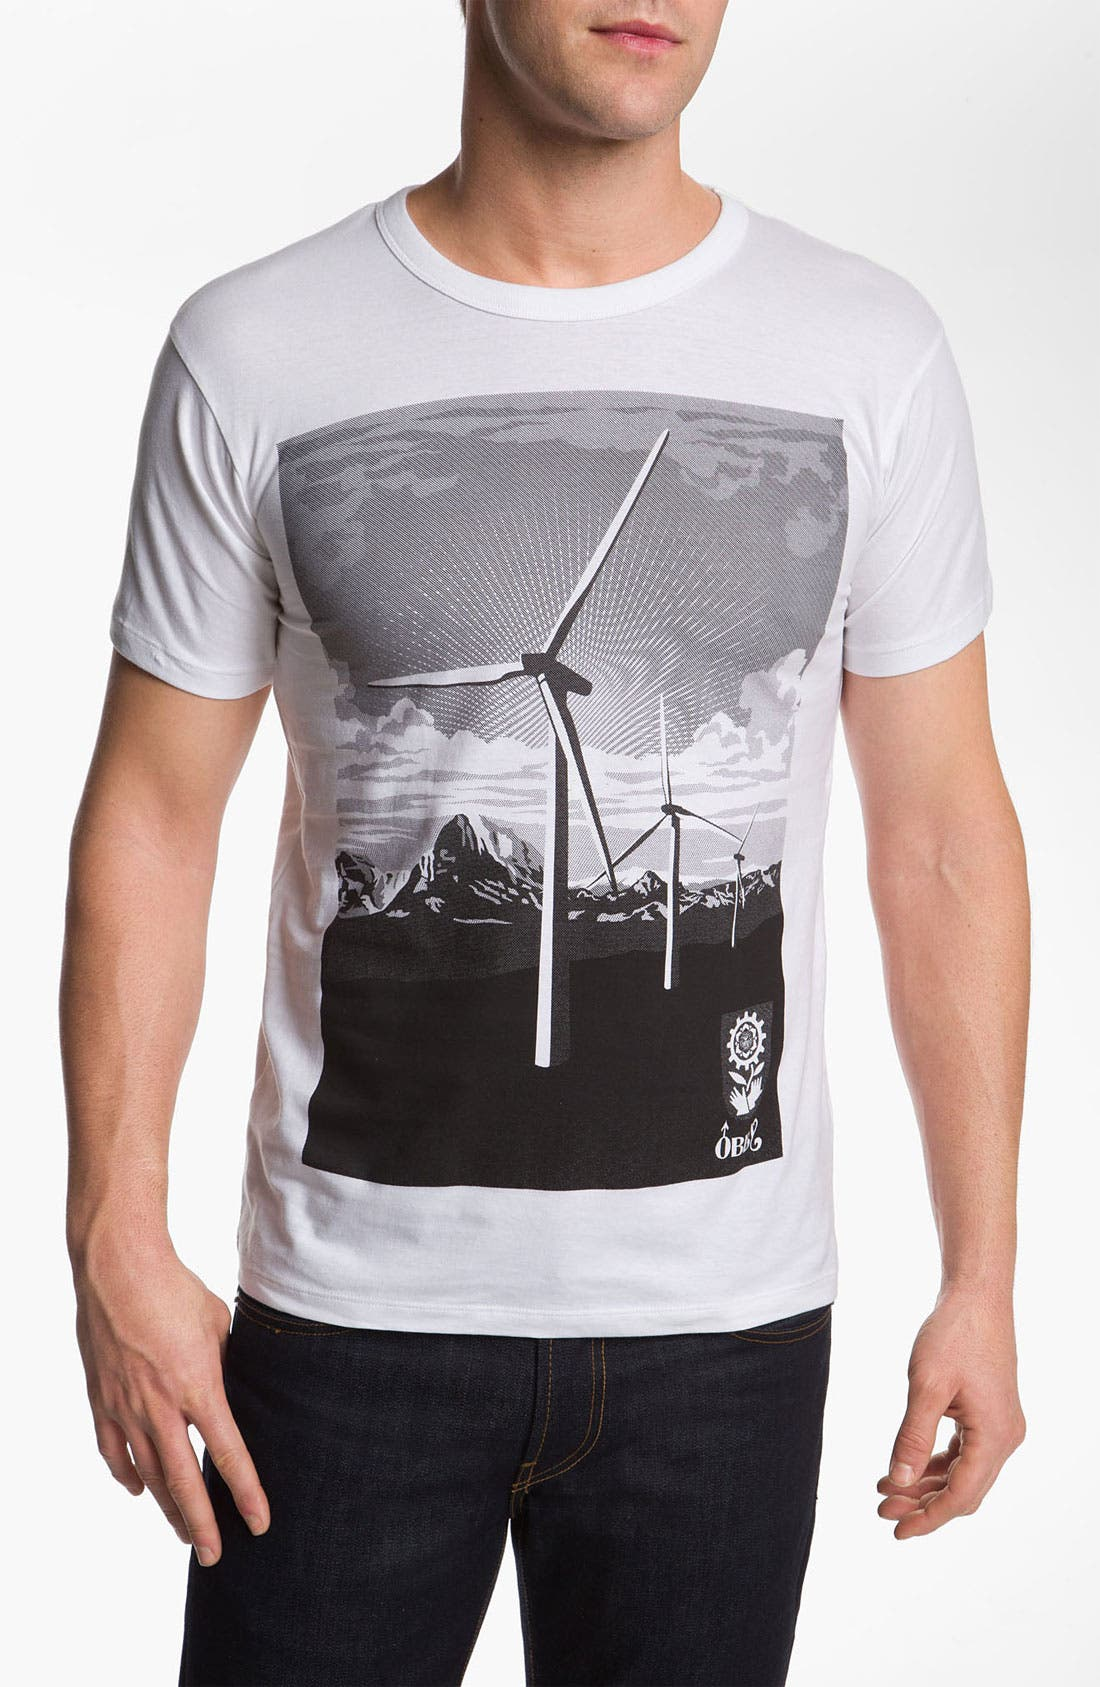 Alternate Image 1 Selected - Obey 'Windmill' Graphic T-Shirt